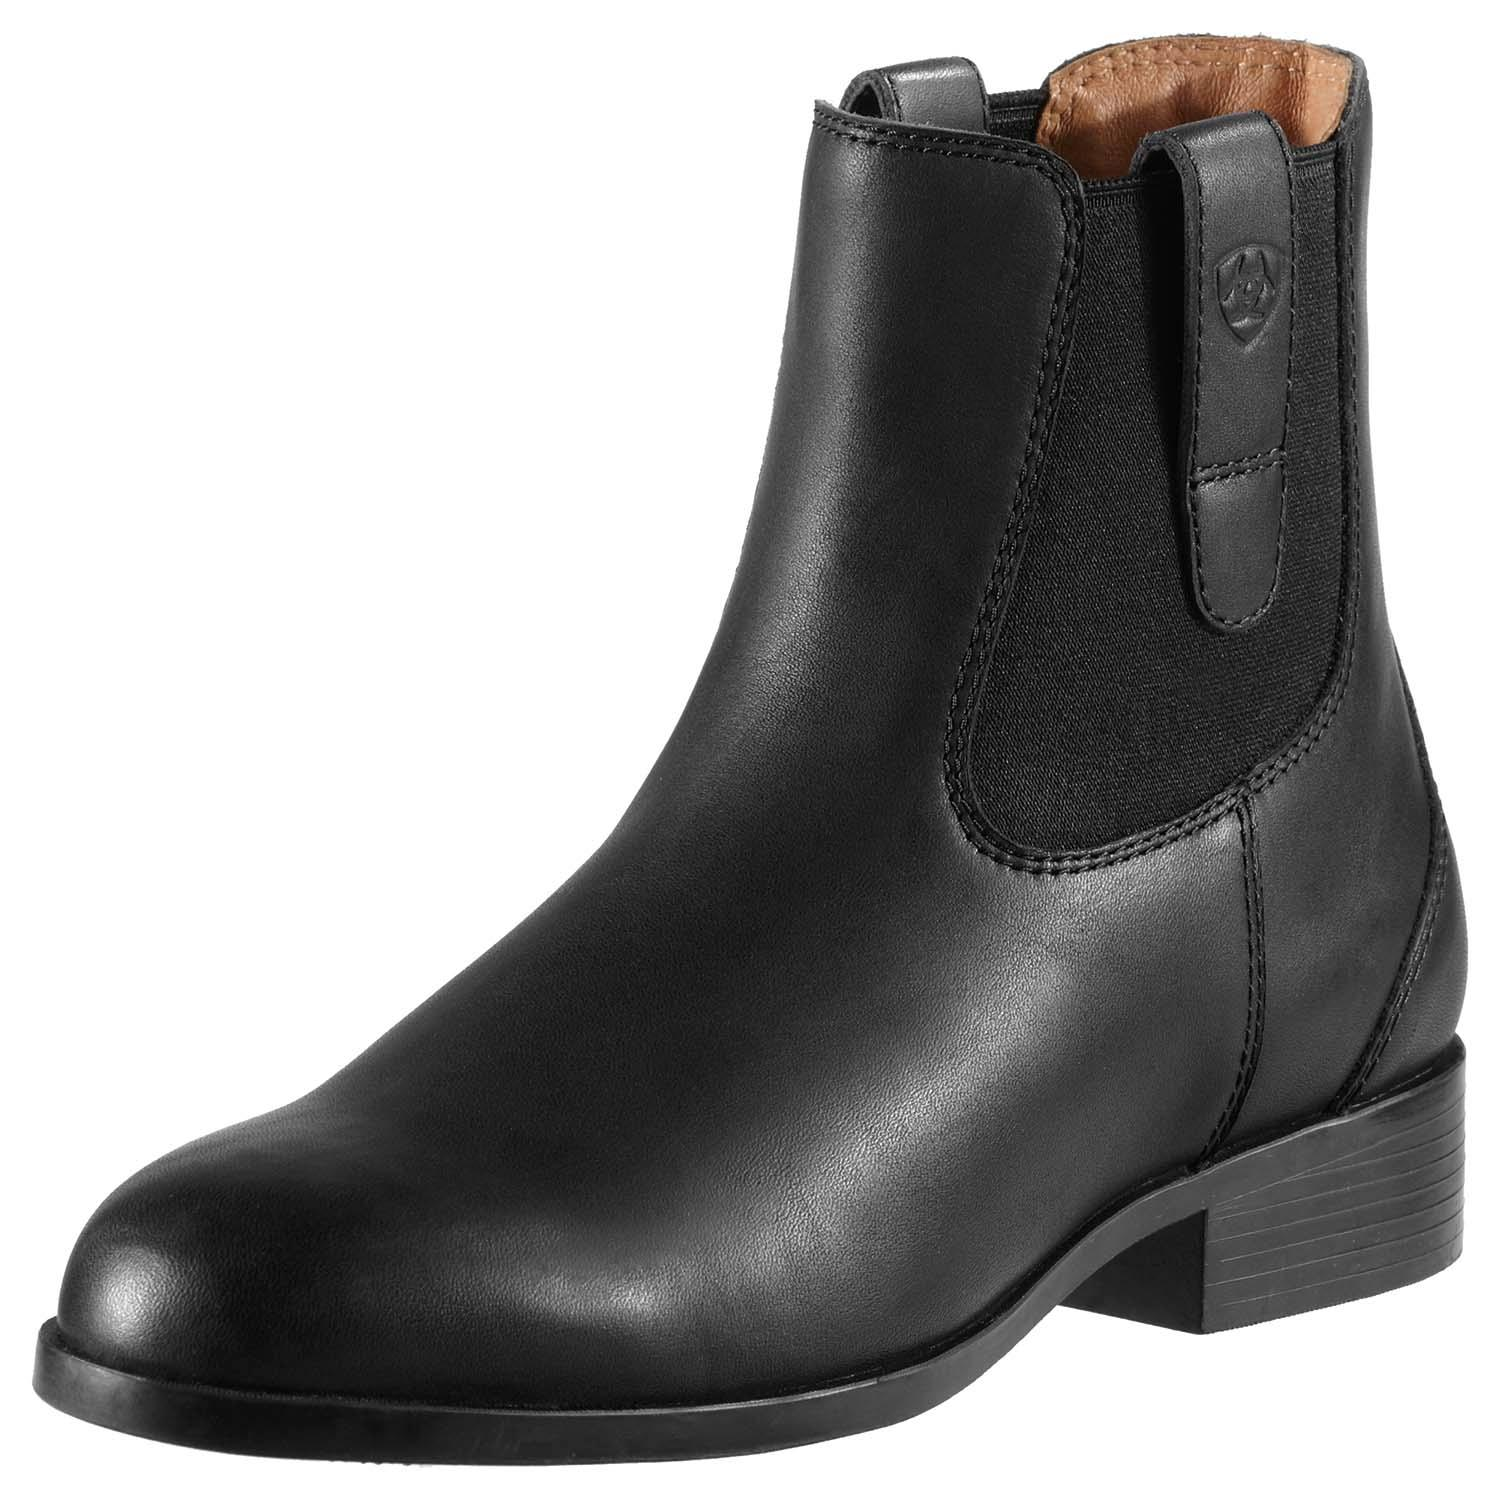 Ariat London Jod Boot - Black - Redpost Equestrian